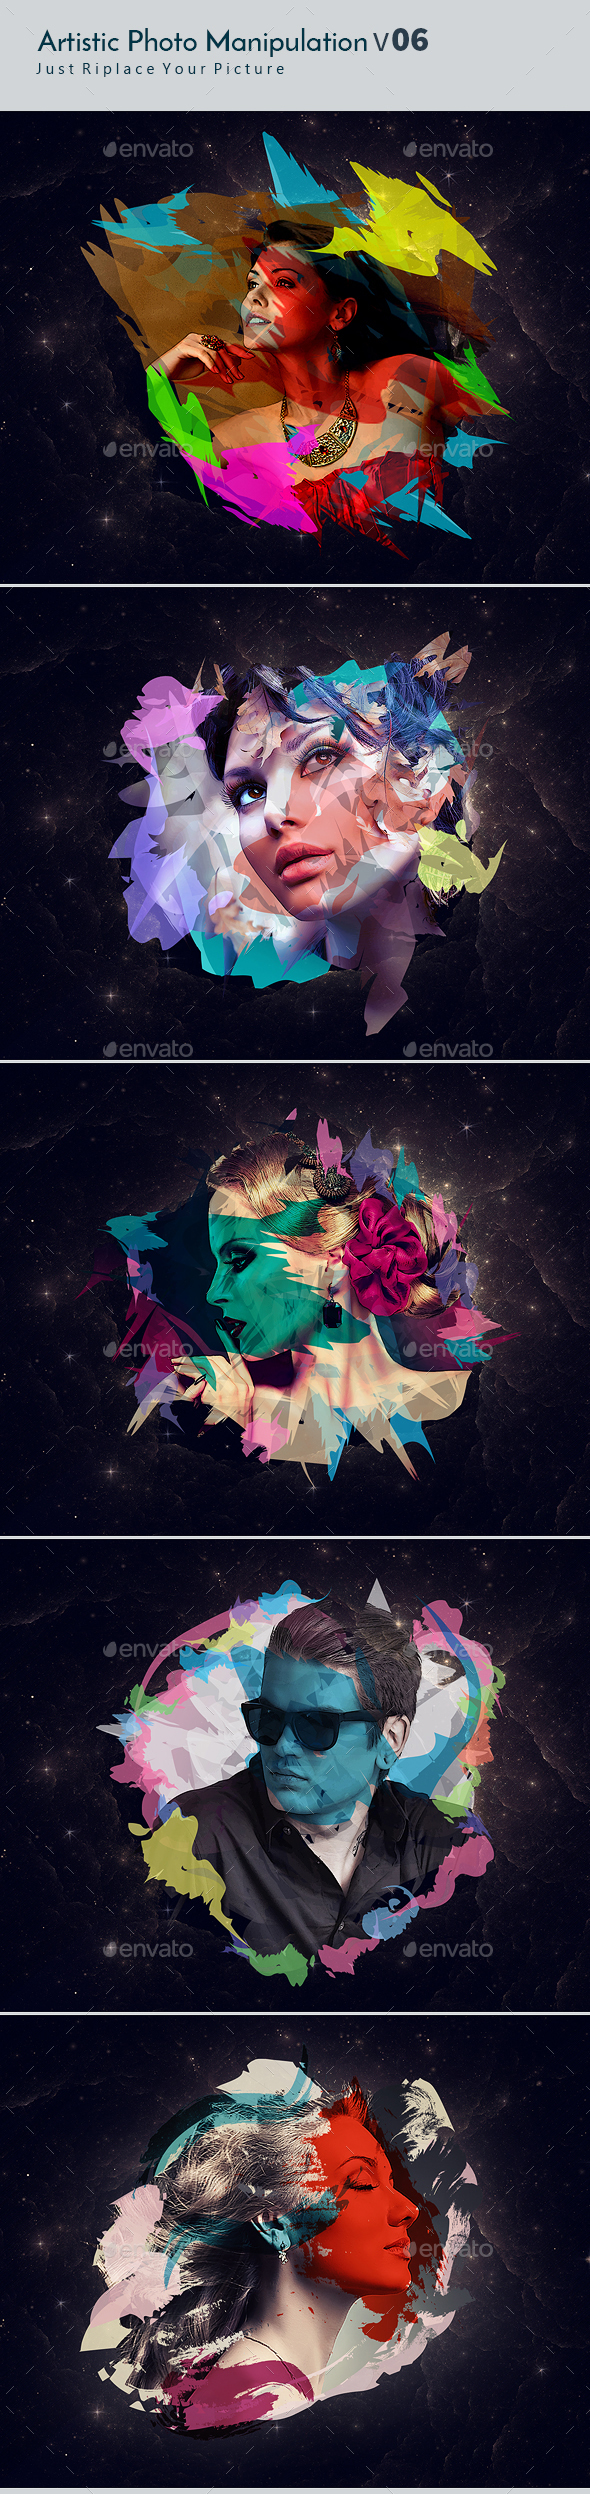 Artstic Photo Manipulation v06 - Photo Templates Graphics